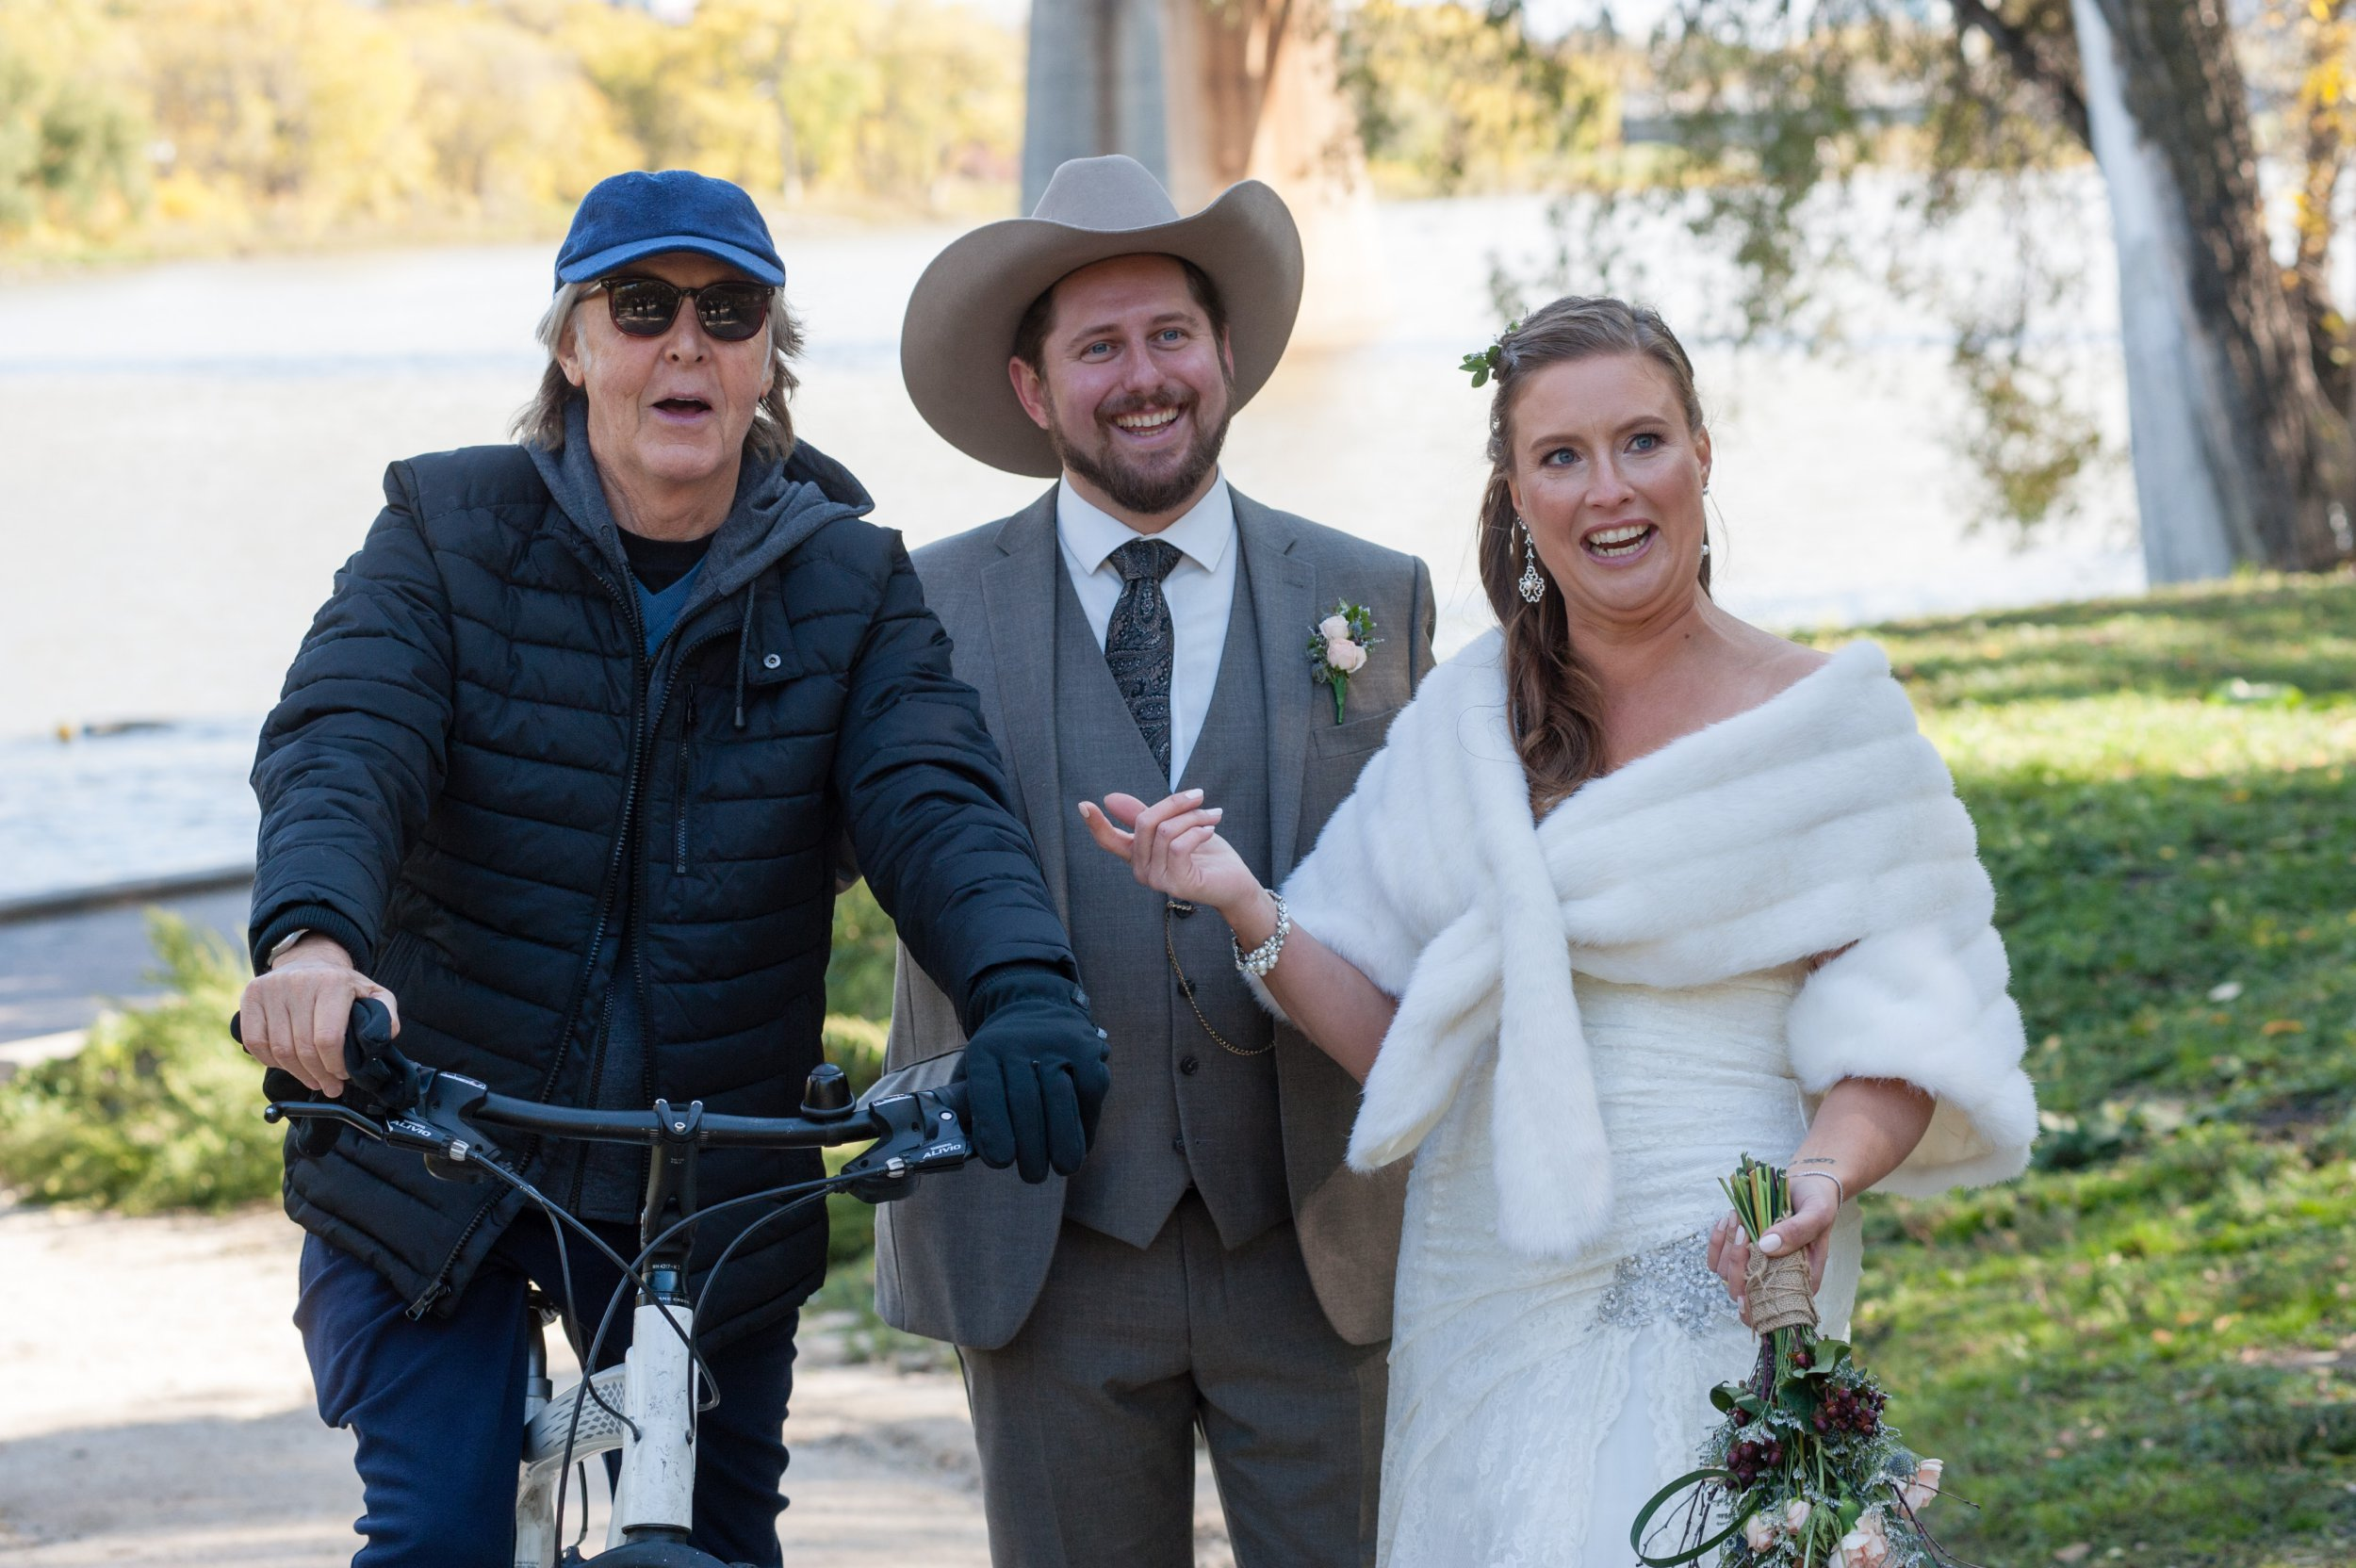 Sir Paul McCartney photo-bombs newlyweds in Winnipeg MADIX Photography